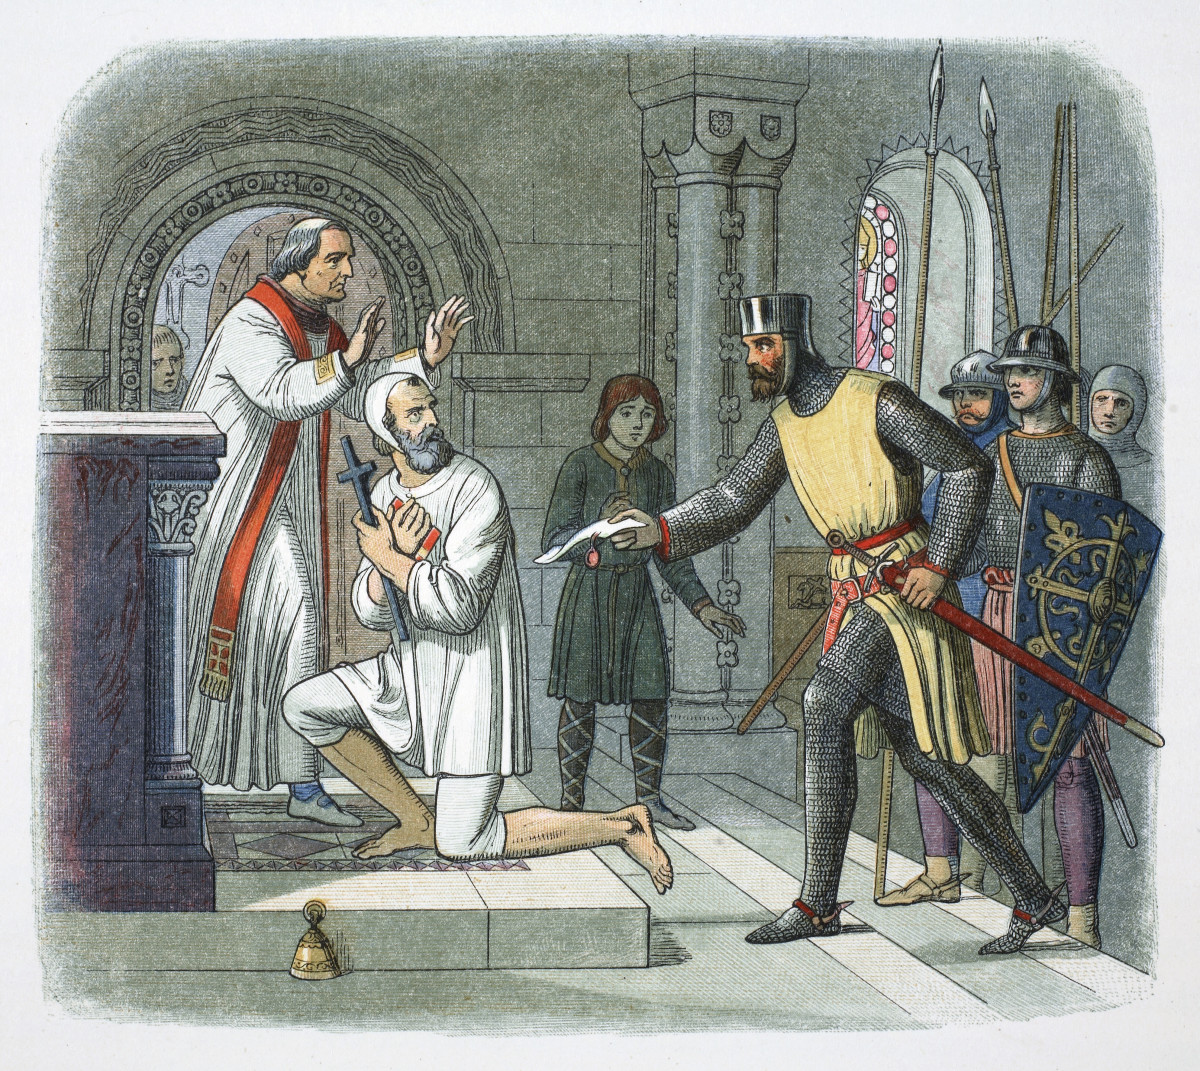 Hubert de Burgh, 1st Earl of Kent (1170–1243), being taken from sanctuary at Boisars, France, 1232.